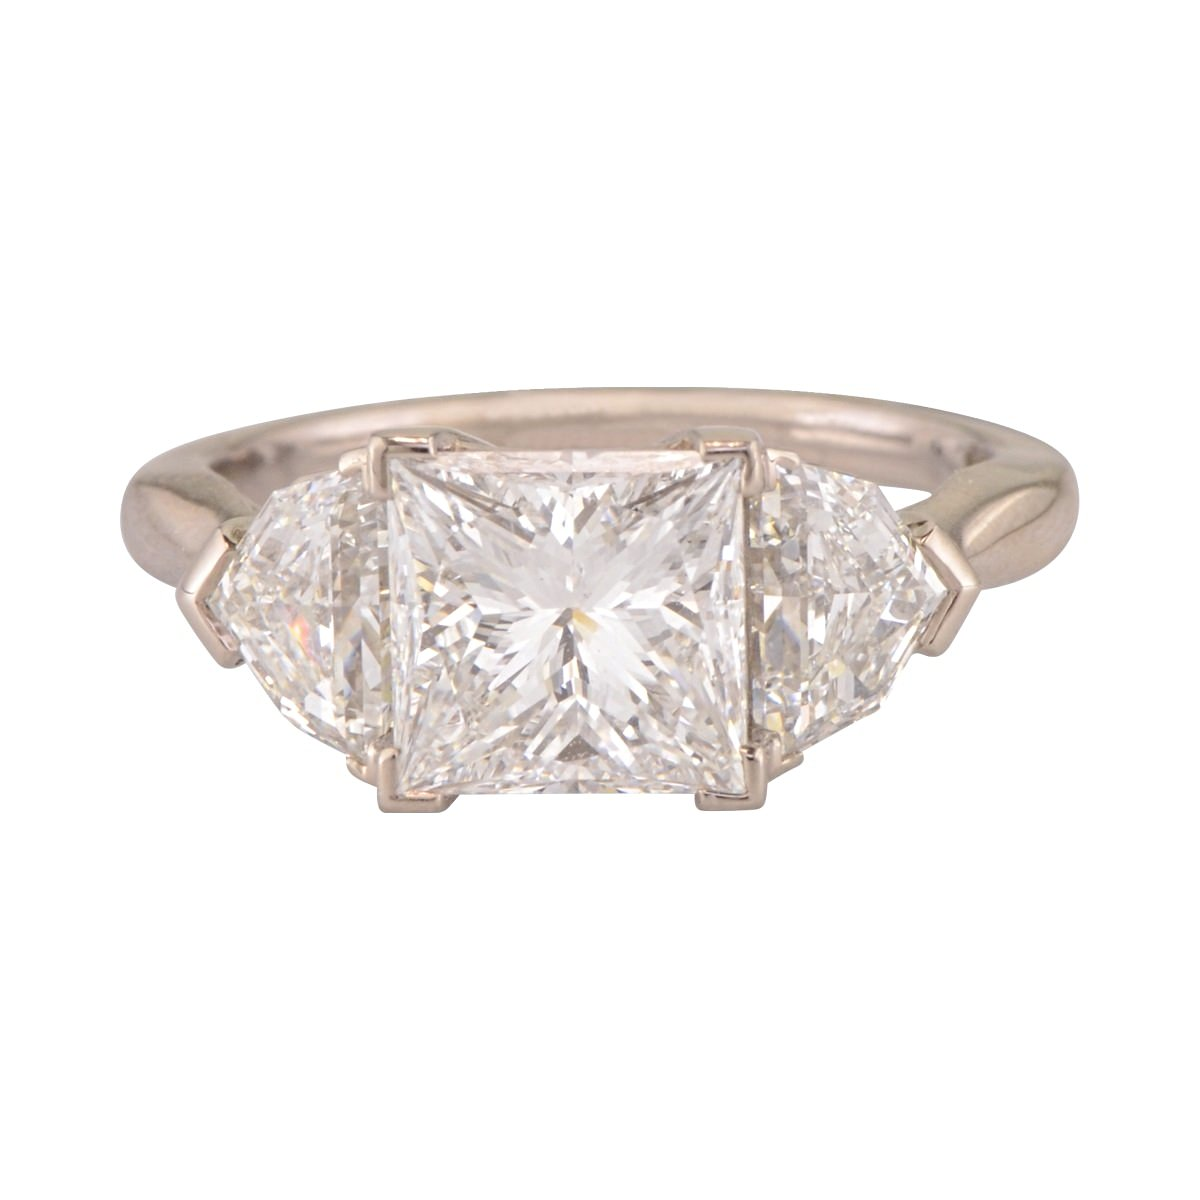 Princess Cut diamond engagement ring 'Florin'.